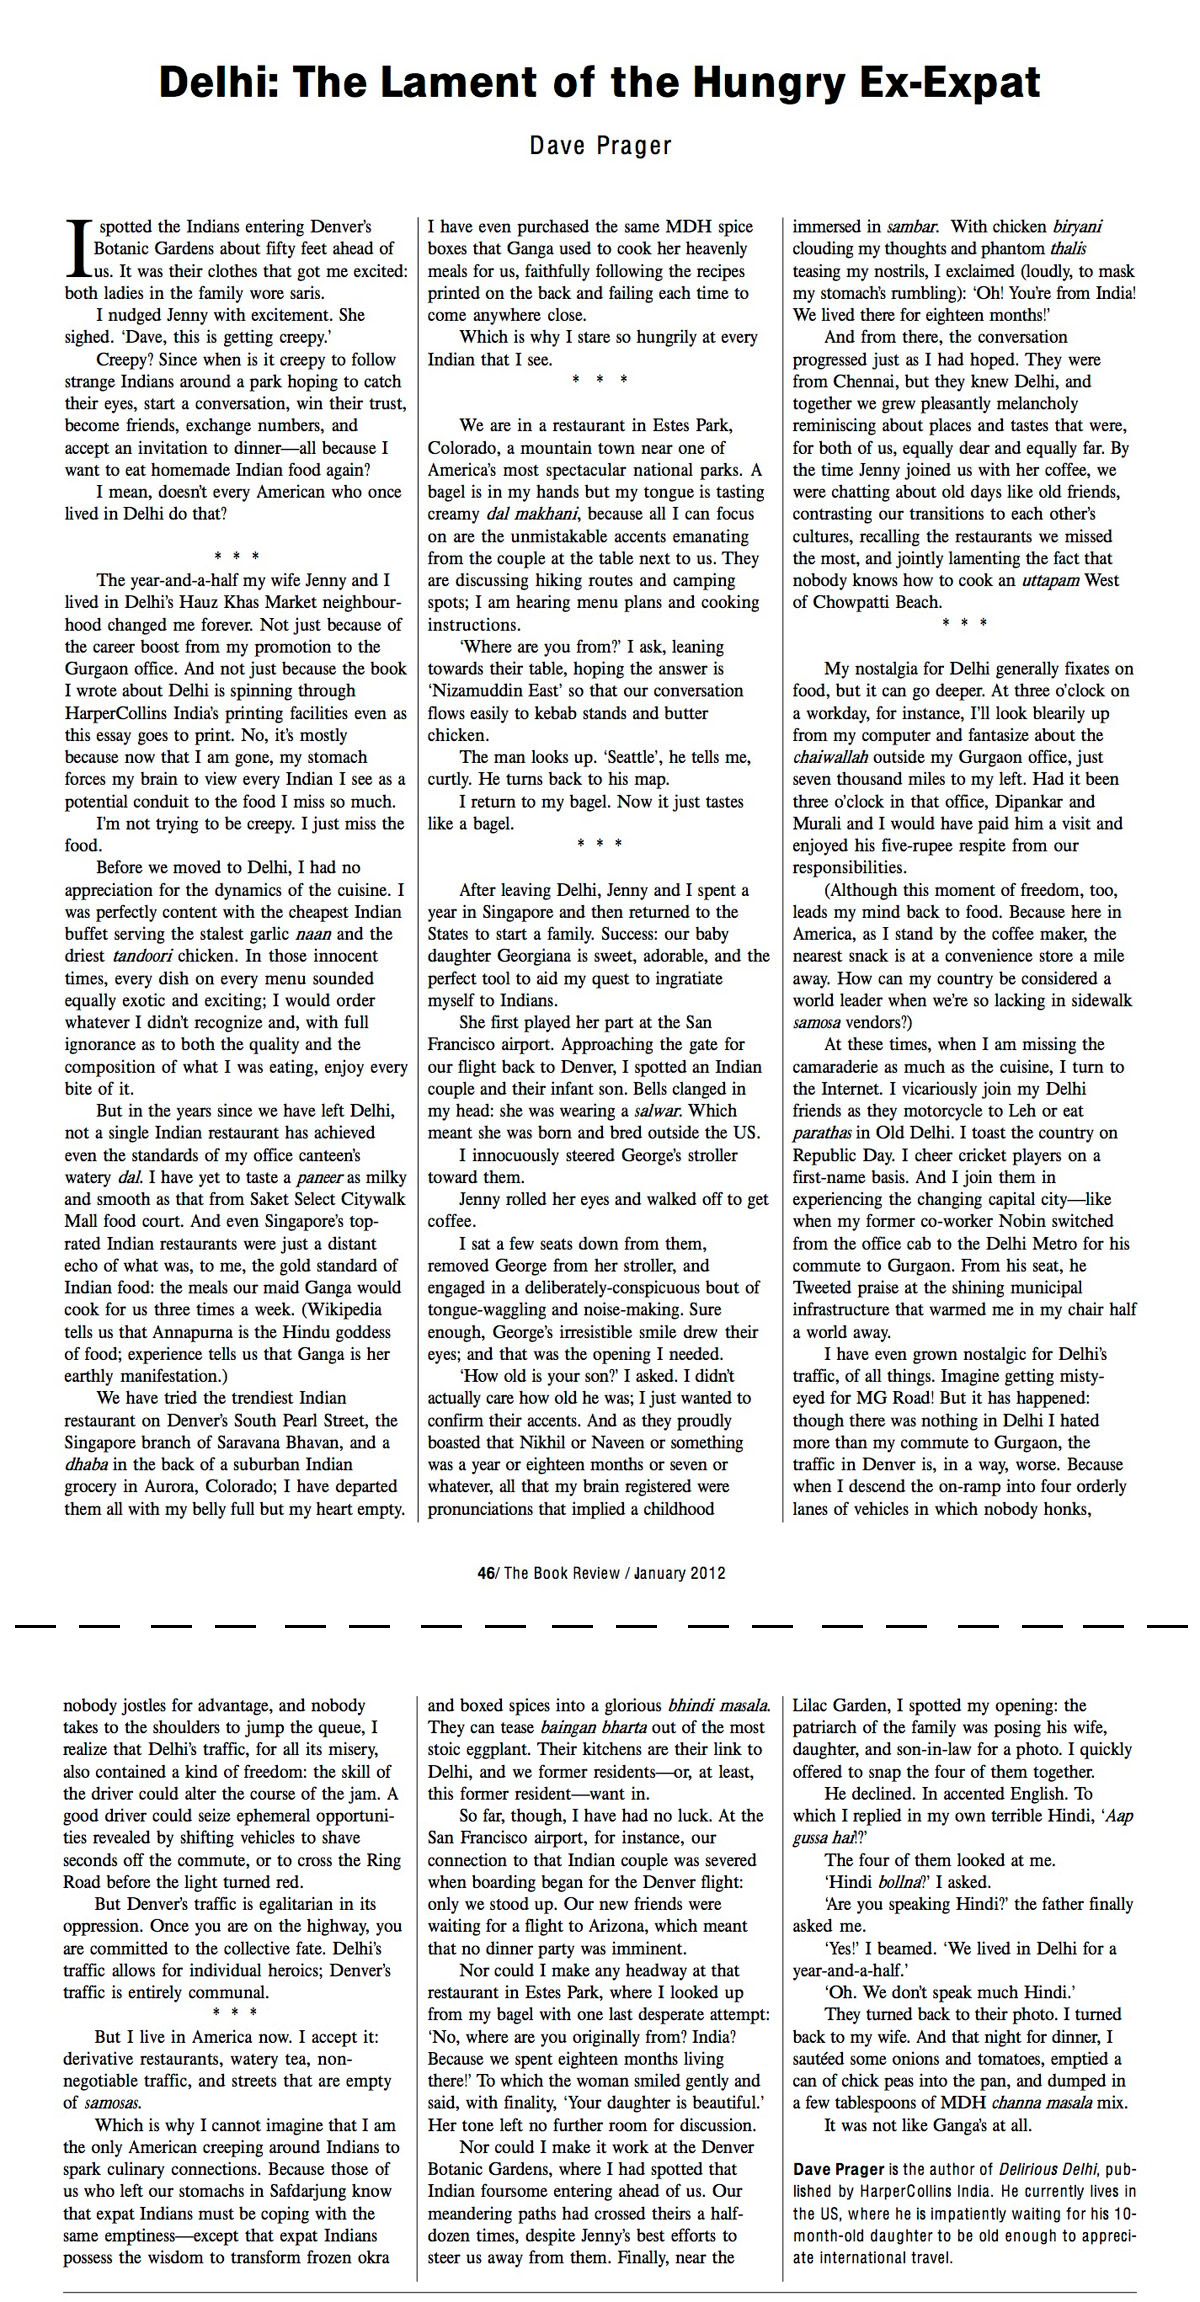 delhi the lament of the hungry expat my essay from the book click for bigger version